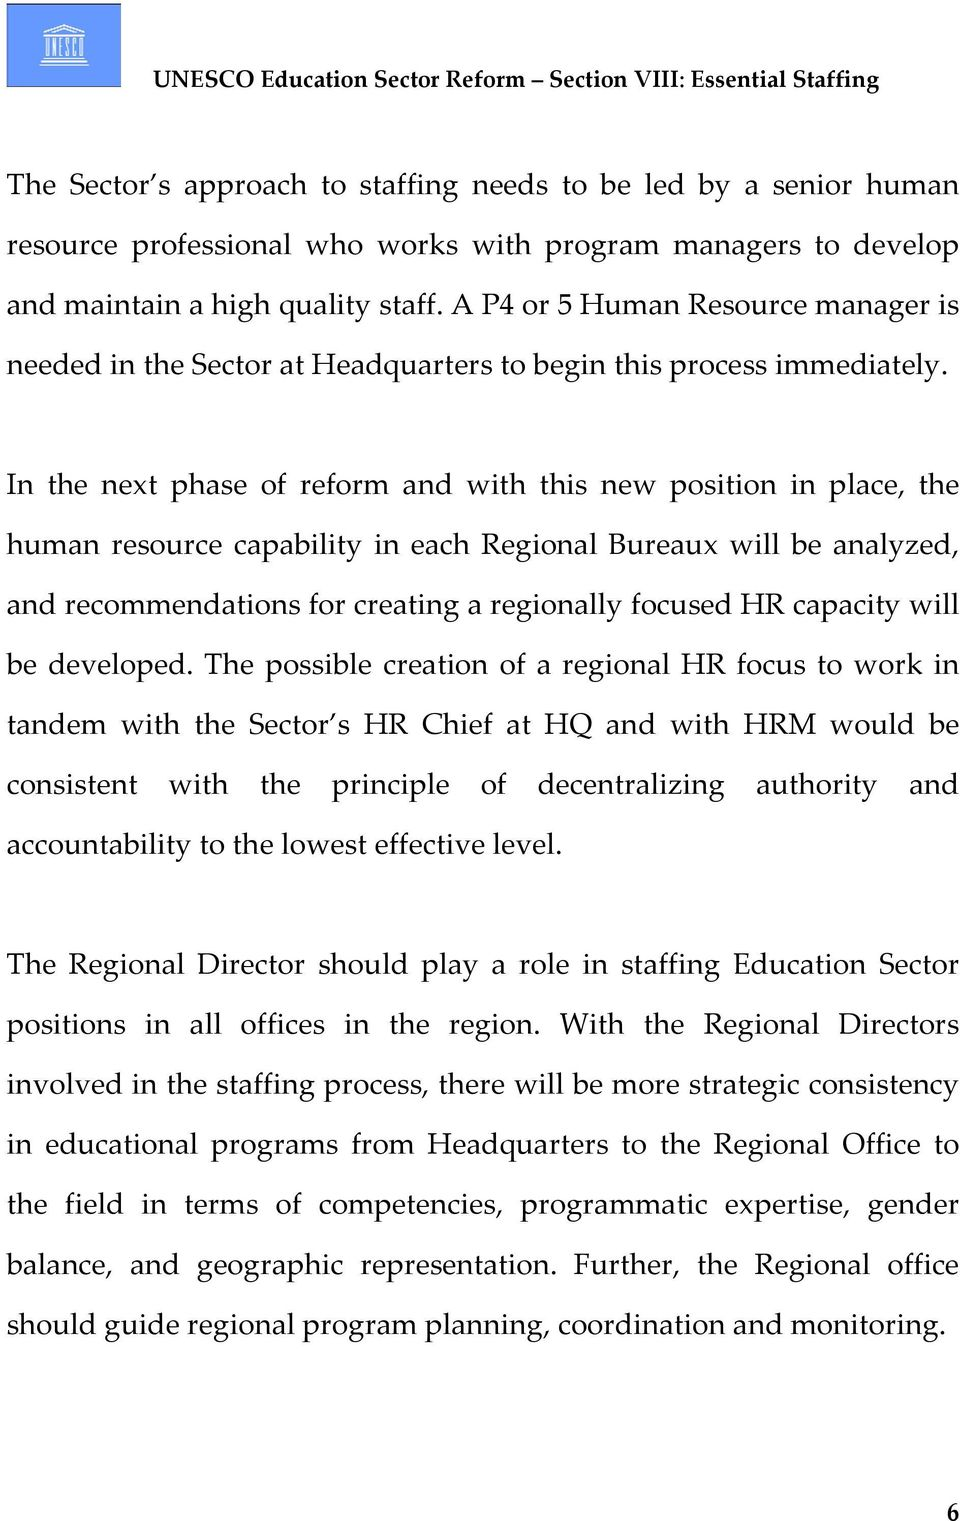 In the next phase of reform and with this new position in place, the human resource capability in each Regional Bureaux will be analyzed, and recommendations for creating a regionally focused HR